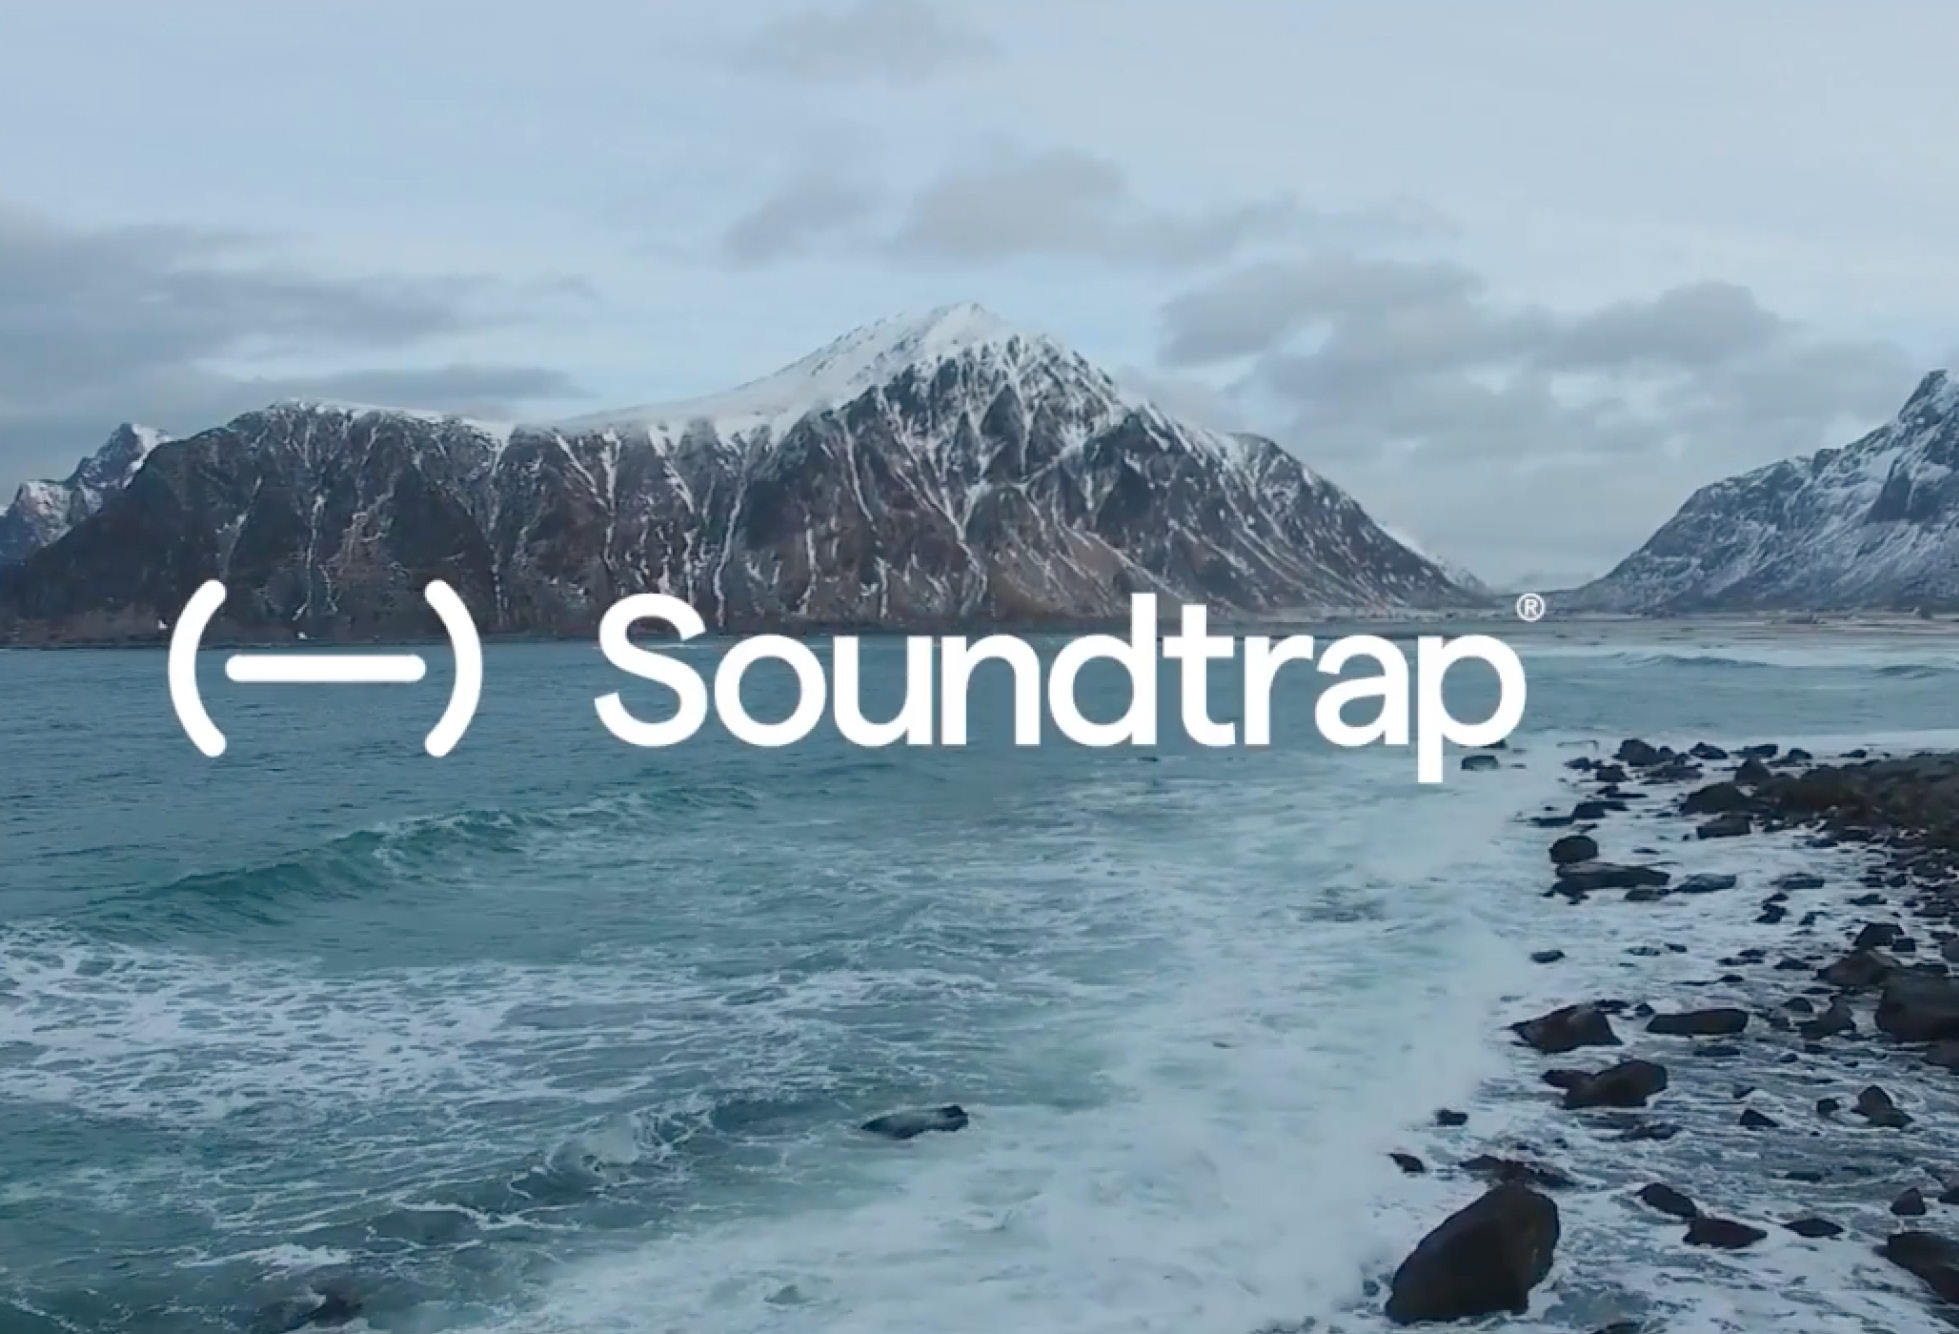 Fonts in use: Soundtrap App